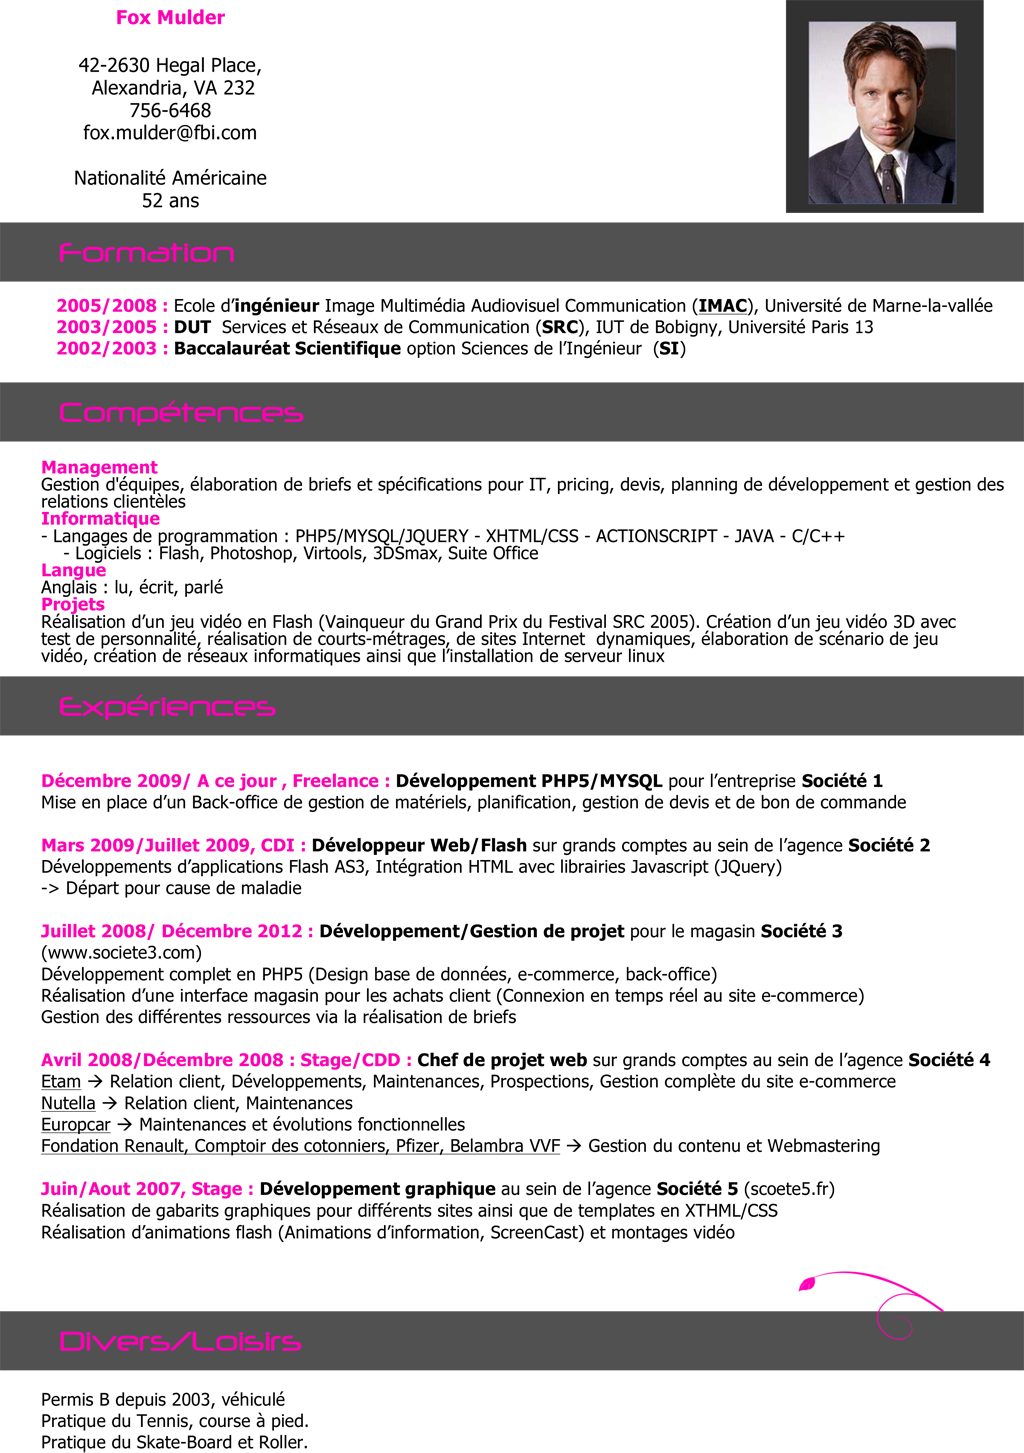 Exemple Cv Ingenieur Telecom Cv Lettre De Motivation Cv Ingenieur Modele Cv